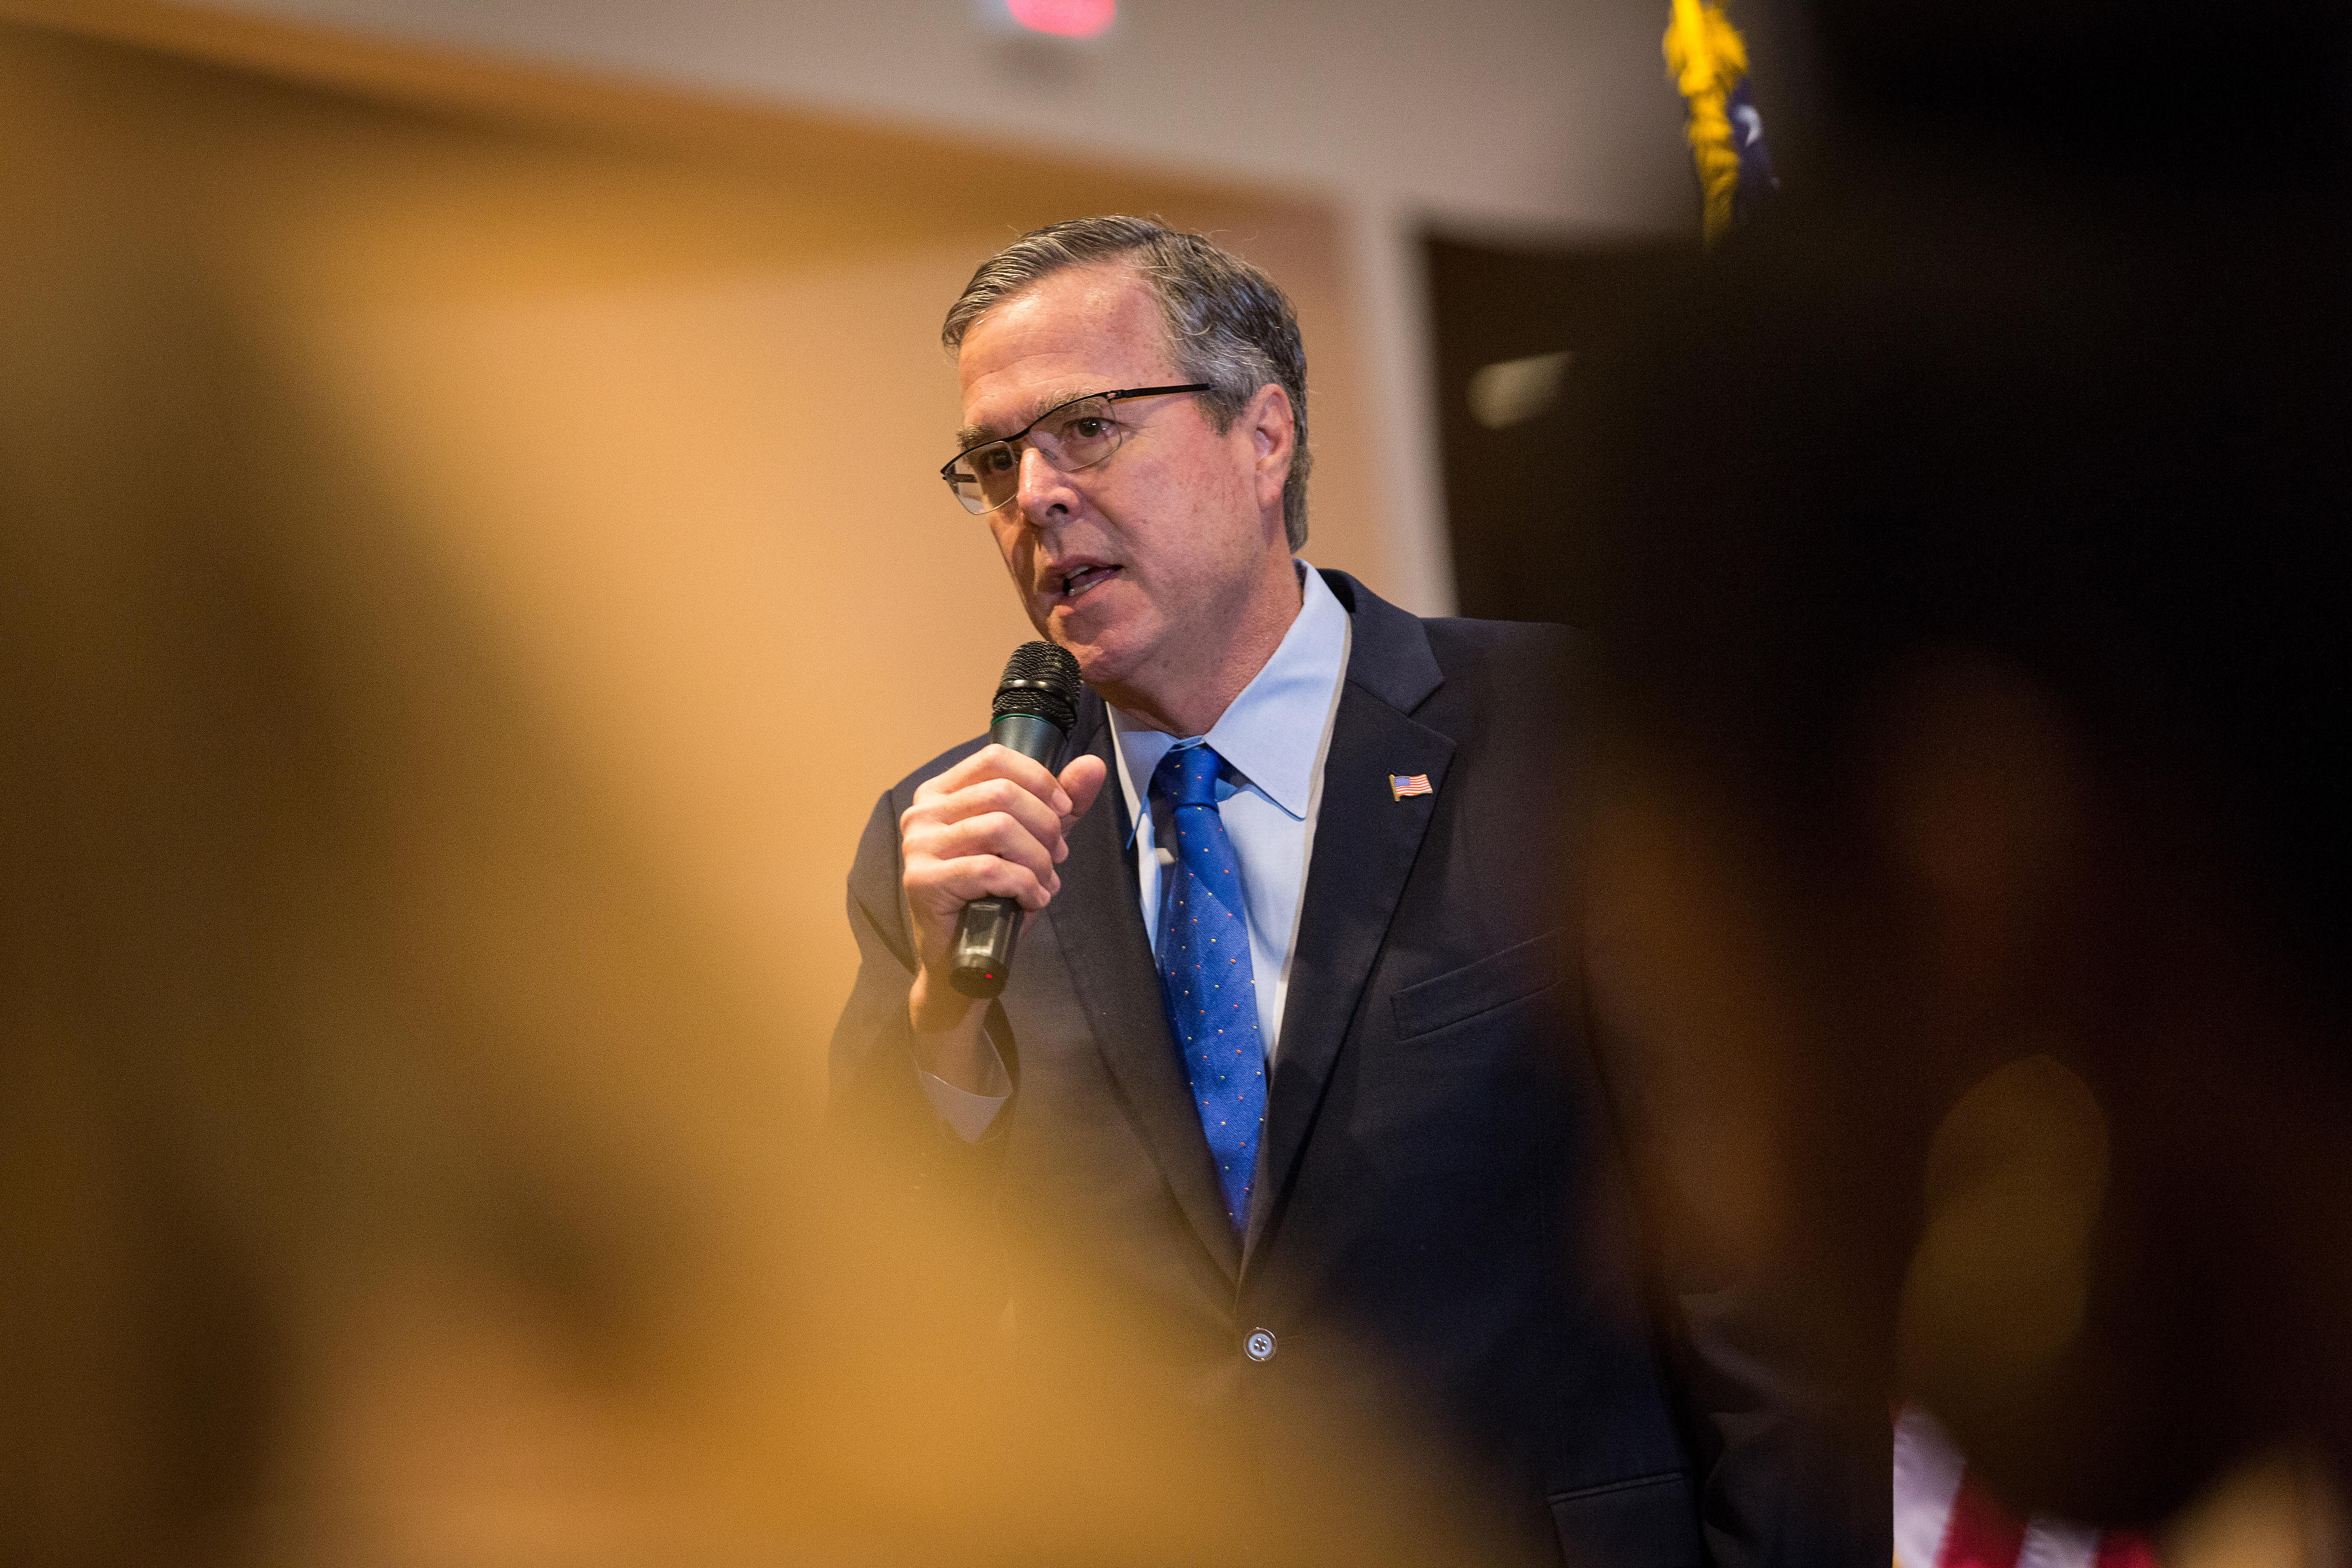 Former Florida Governor and potential Republican presidential candidate Jeb Bush speaks to supporters at an early morning GOP breakfast event in Myrtle Beach, South Carolina, on Mar. 18, 2015.